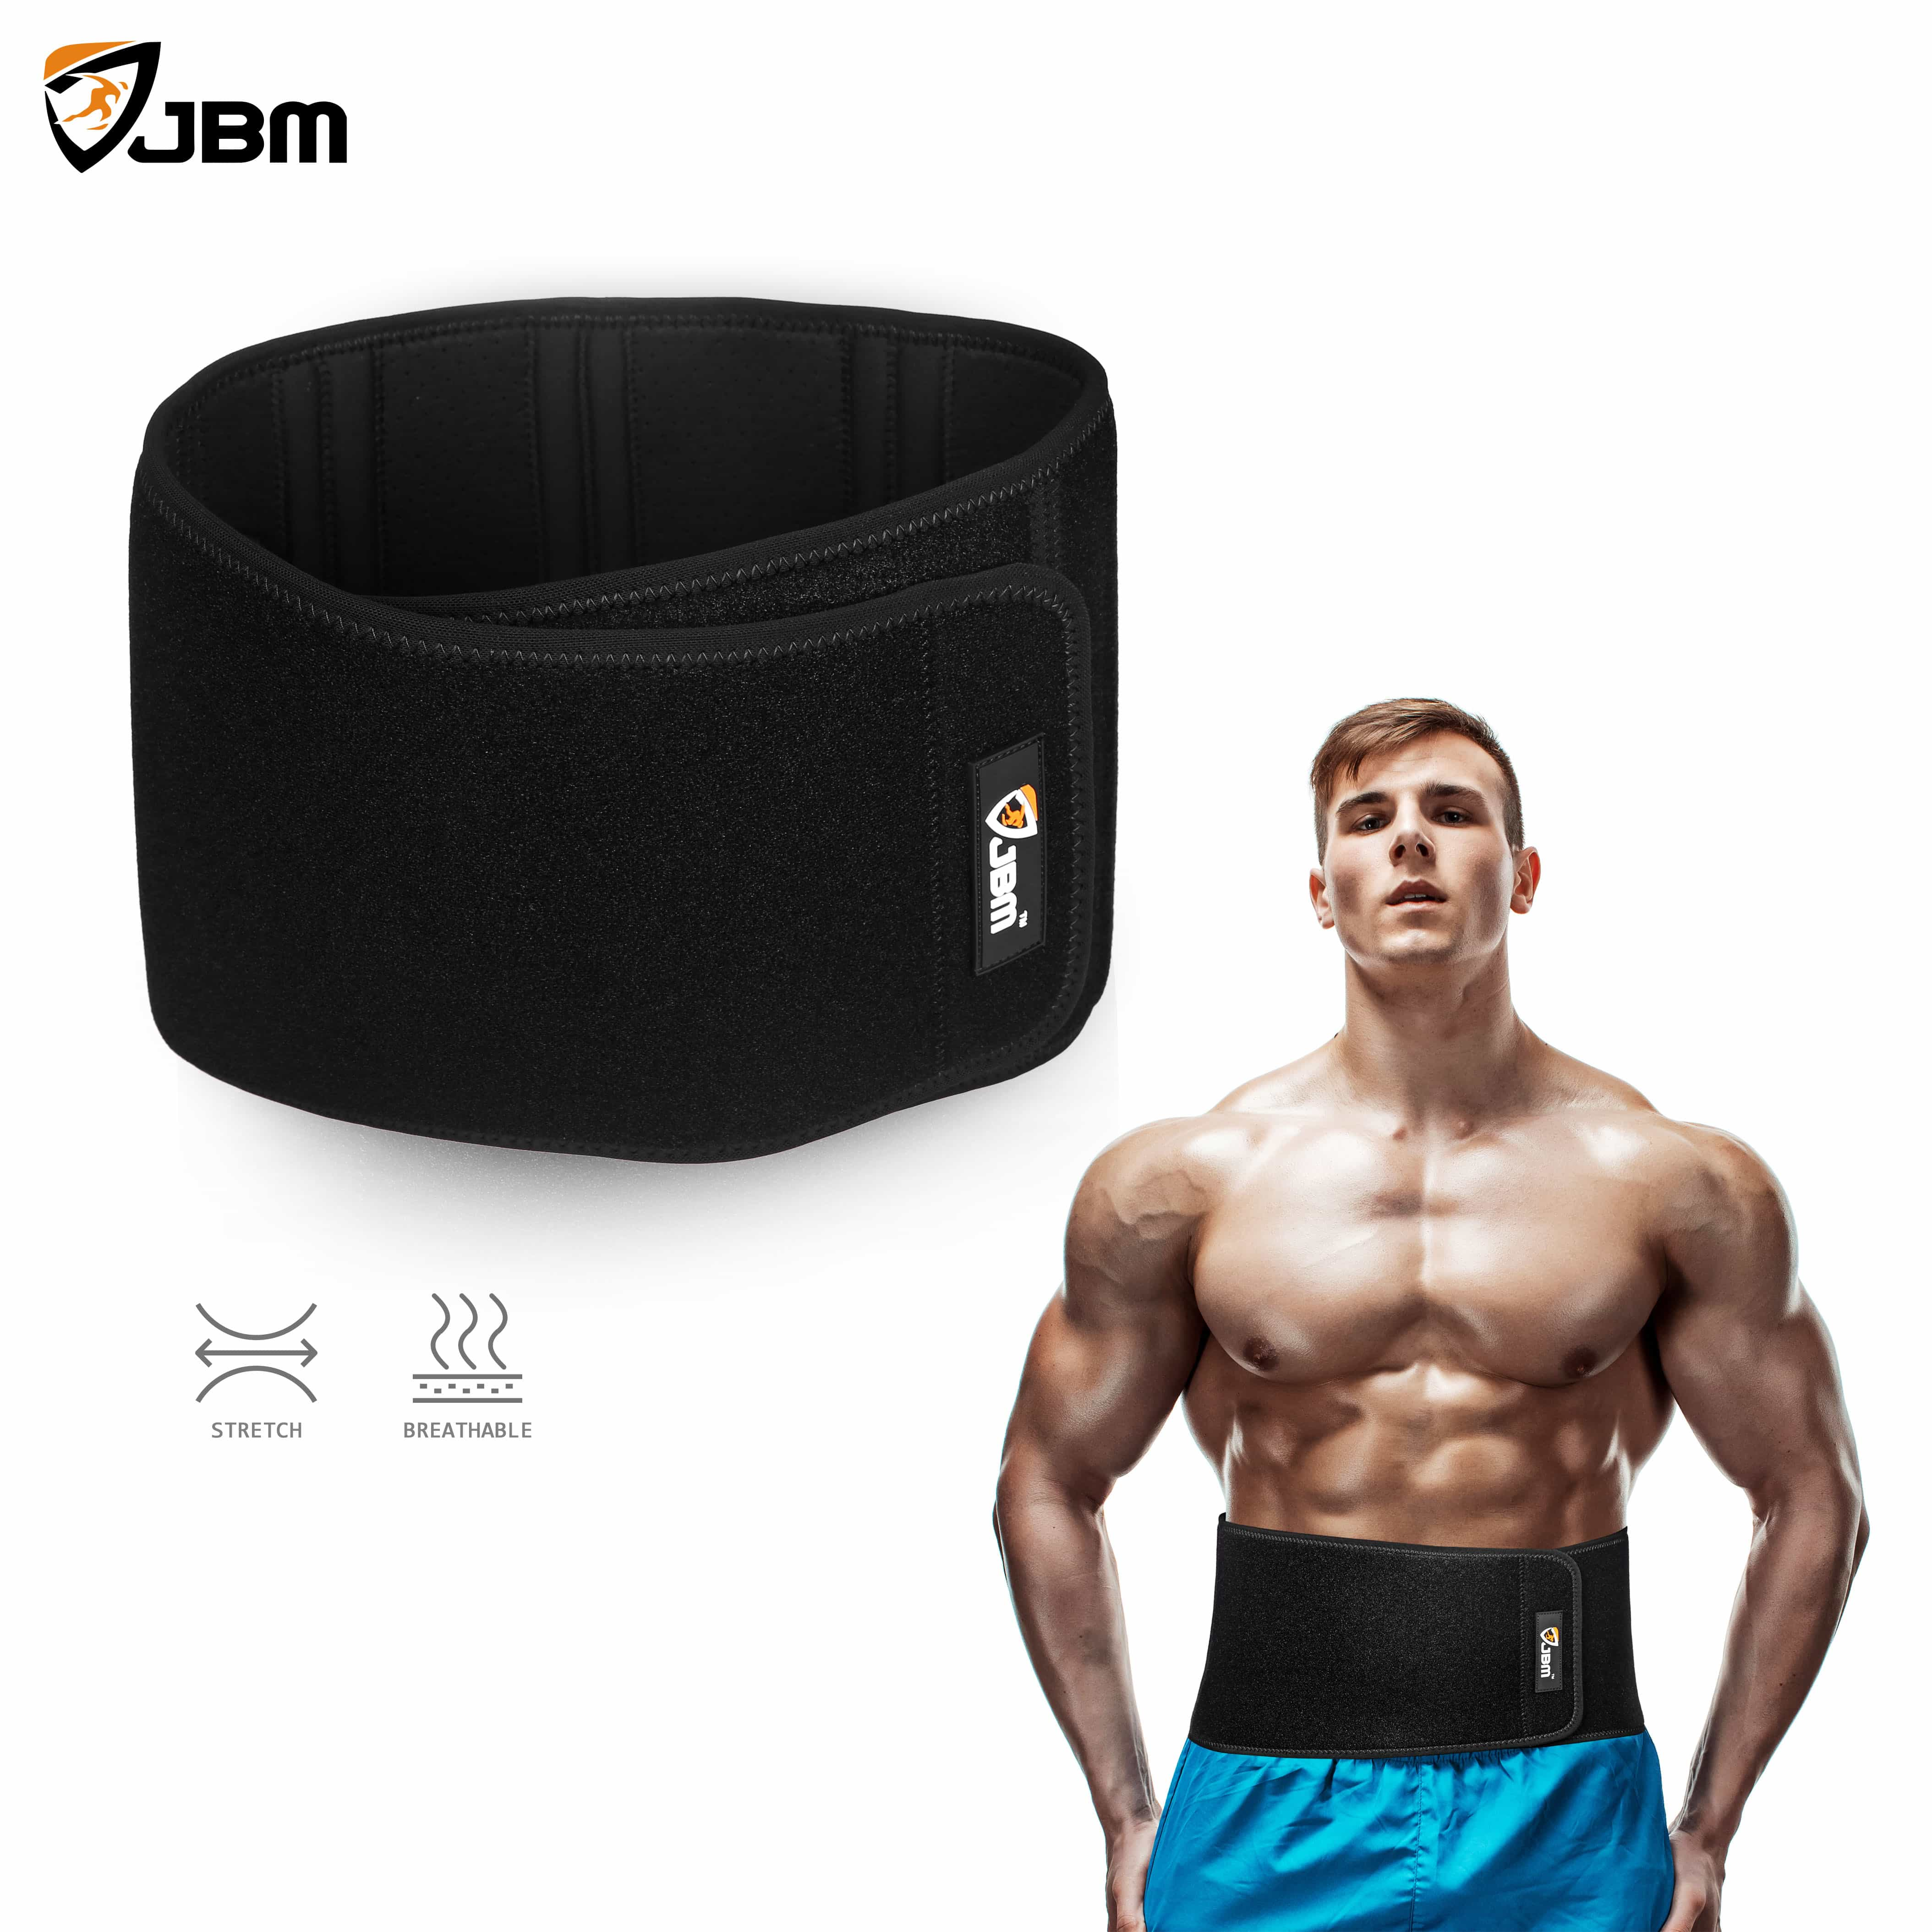 portable picnic chair twin sleeper sofa target buy jbm adjustable waist trimmer belt weight loss wrap cincher for men & women help with ...